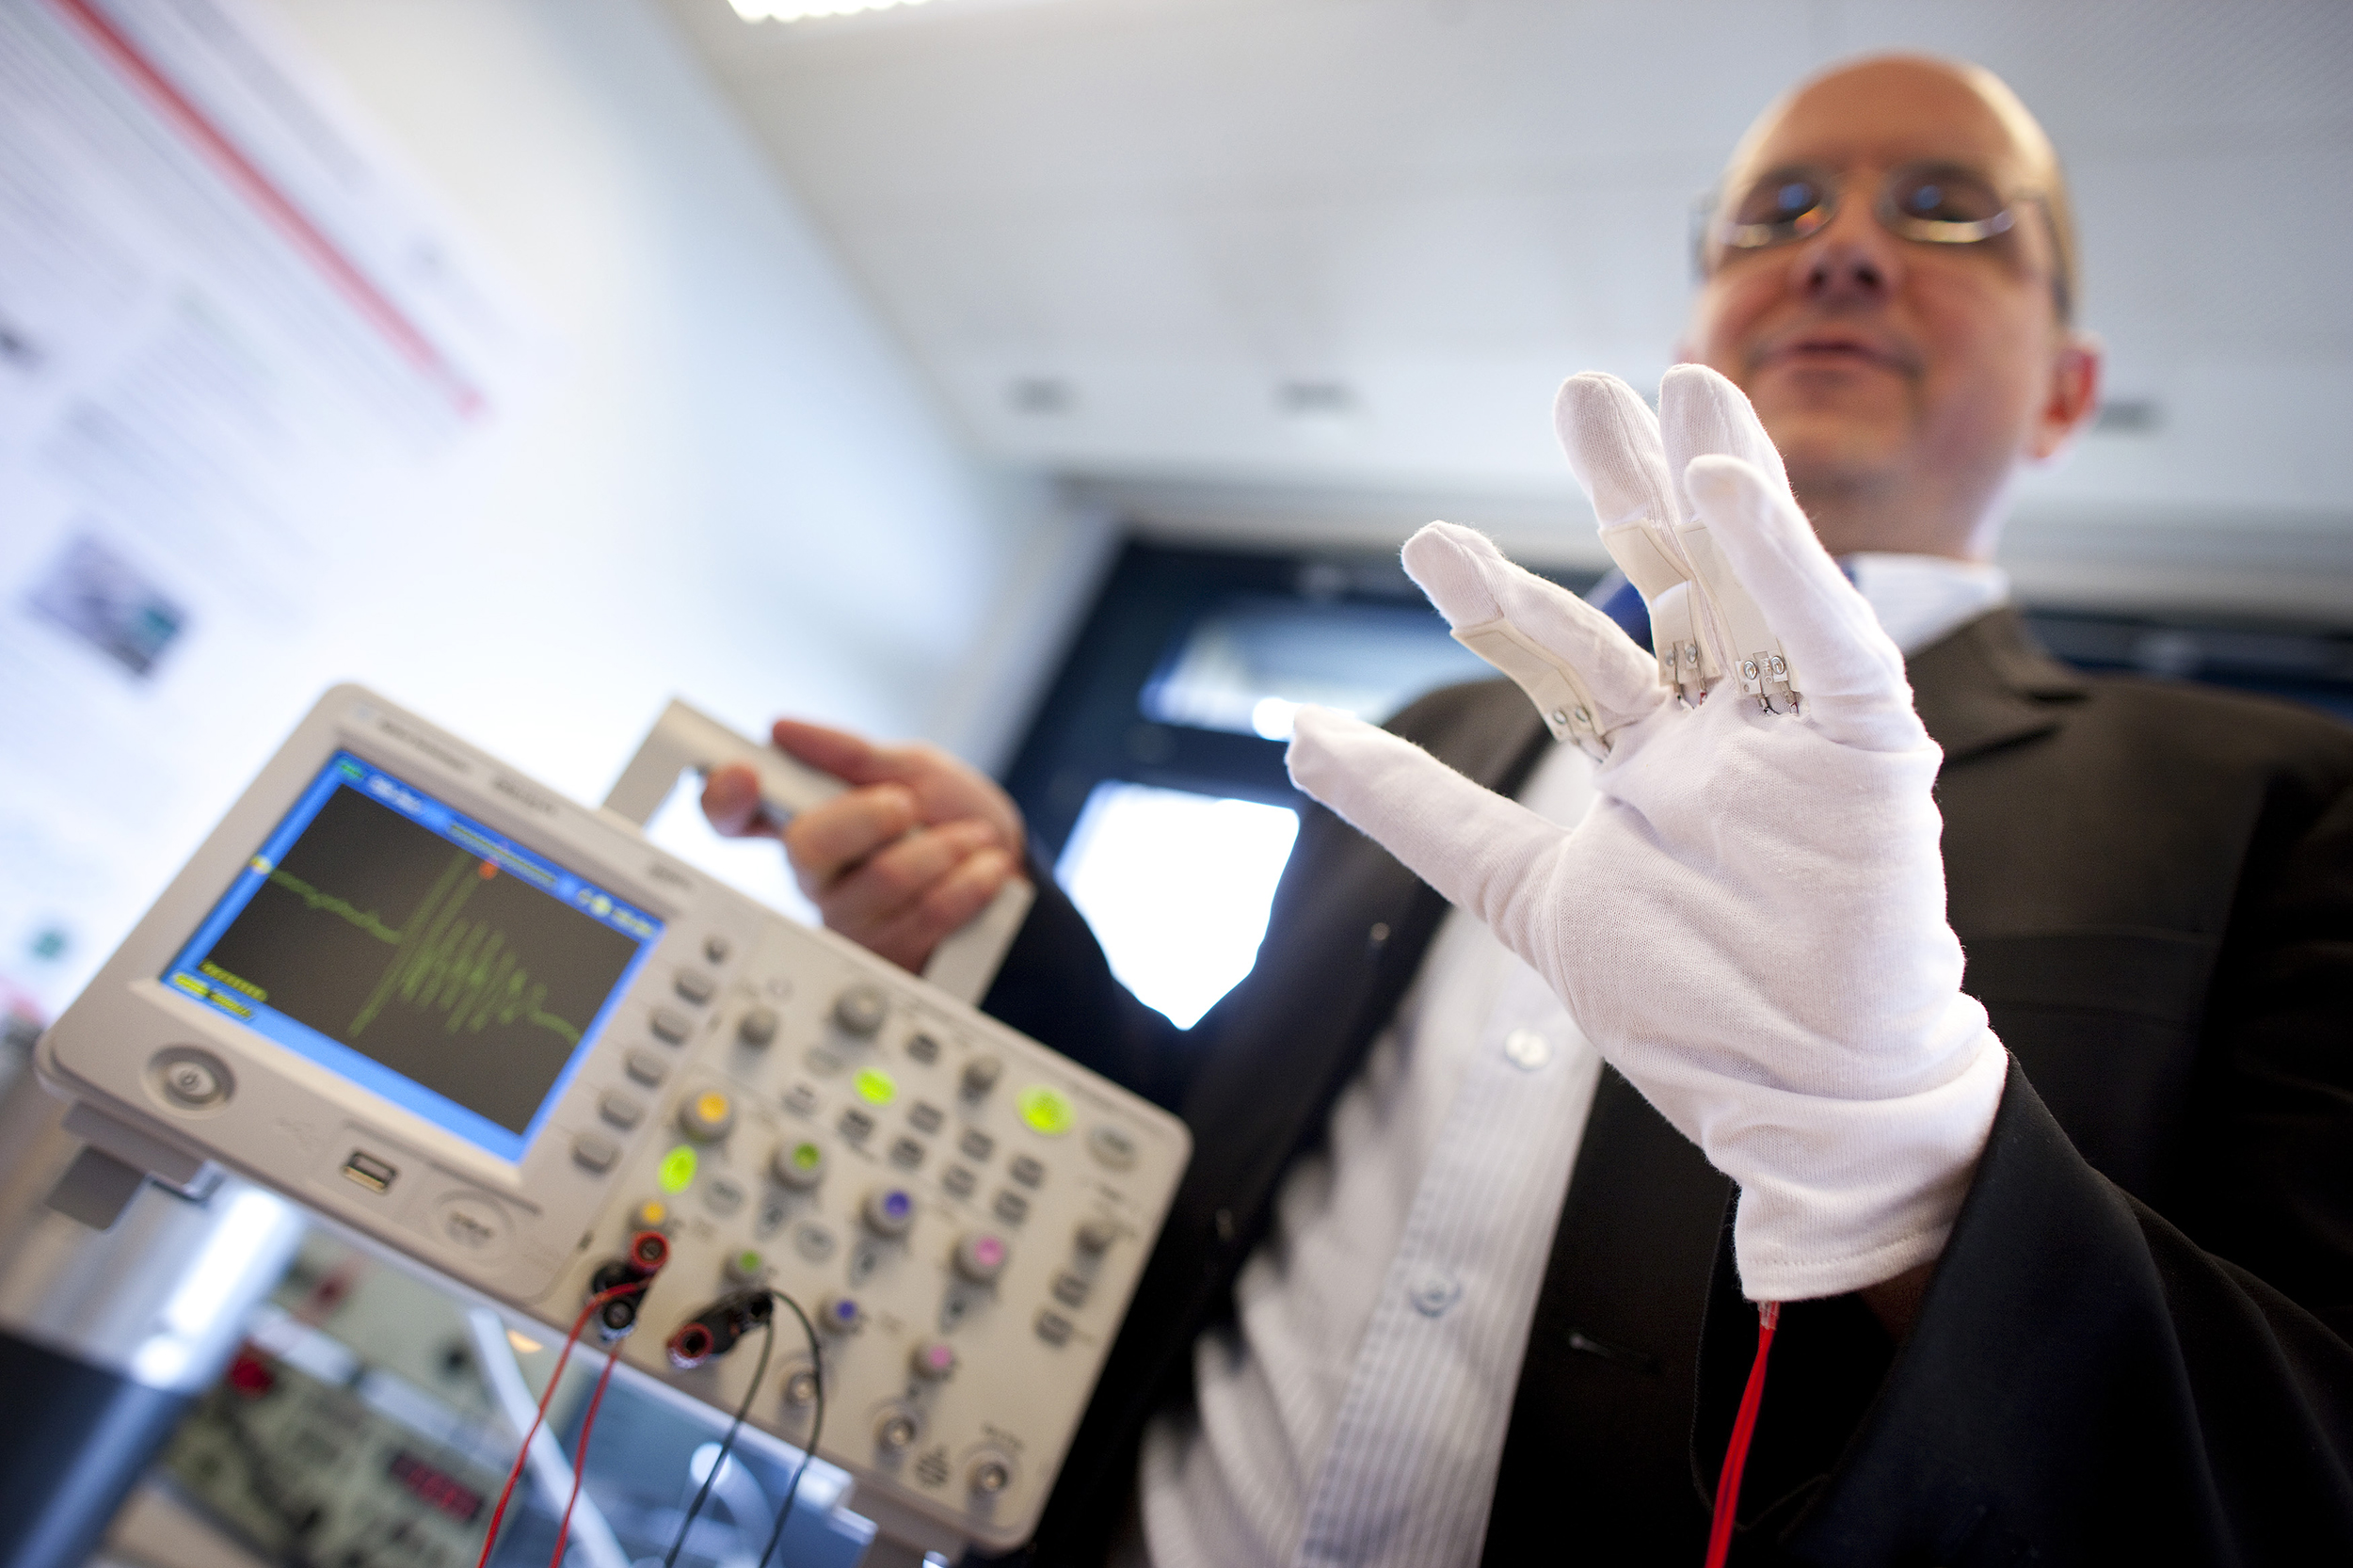 A scientist makes a demonstration of a piezoelectric energy harvesting glove during the media presentation of the Guardian Angels project at the Swiss Federal Institute of Technology in Ecublens